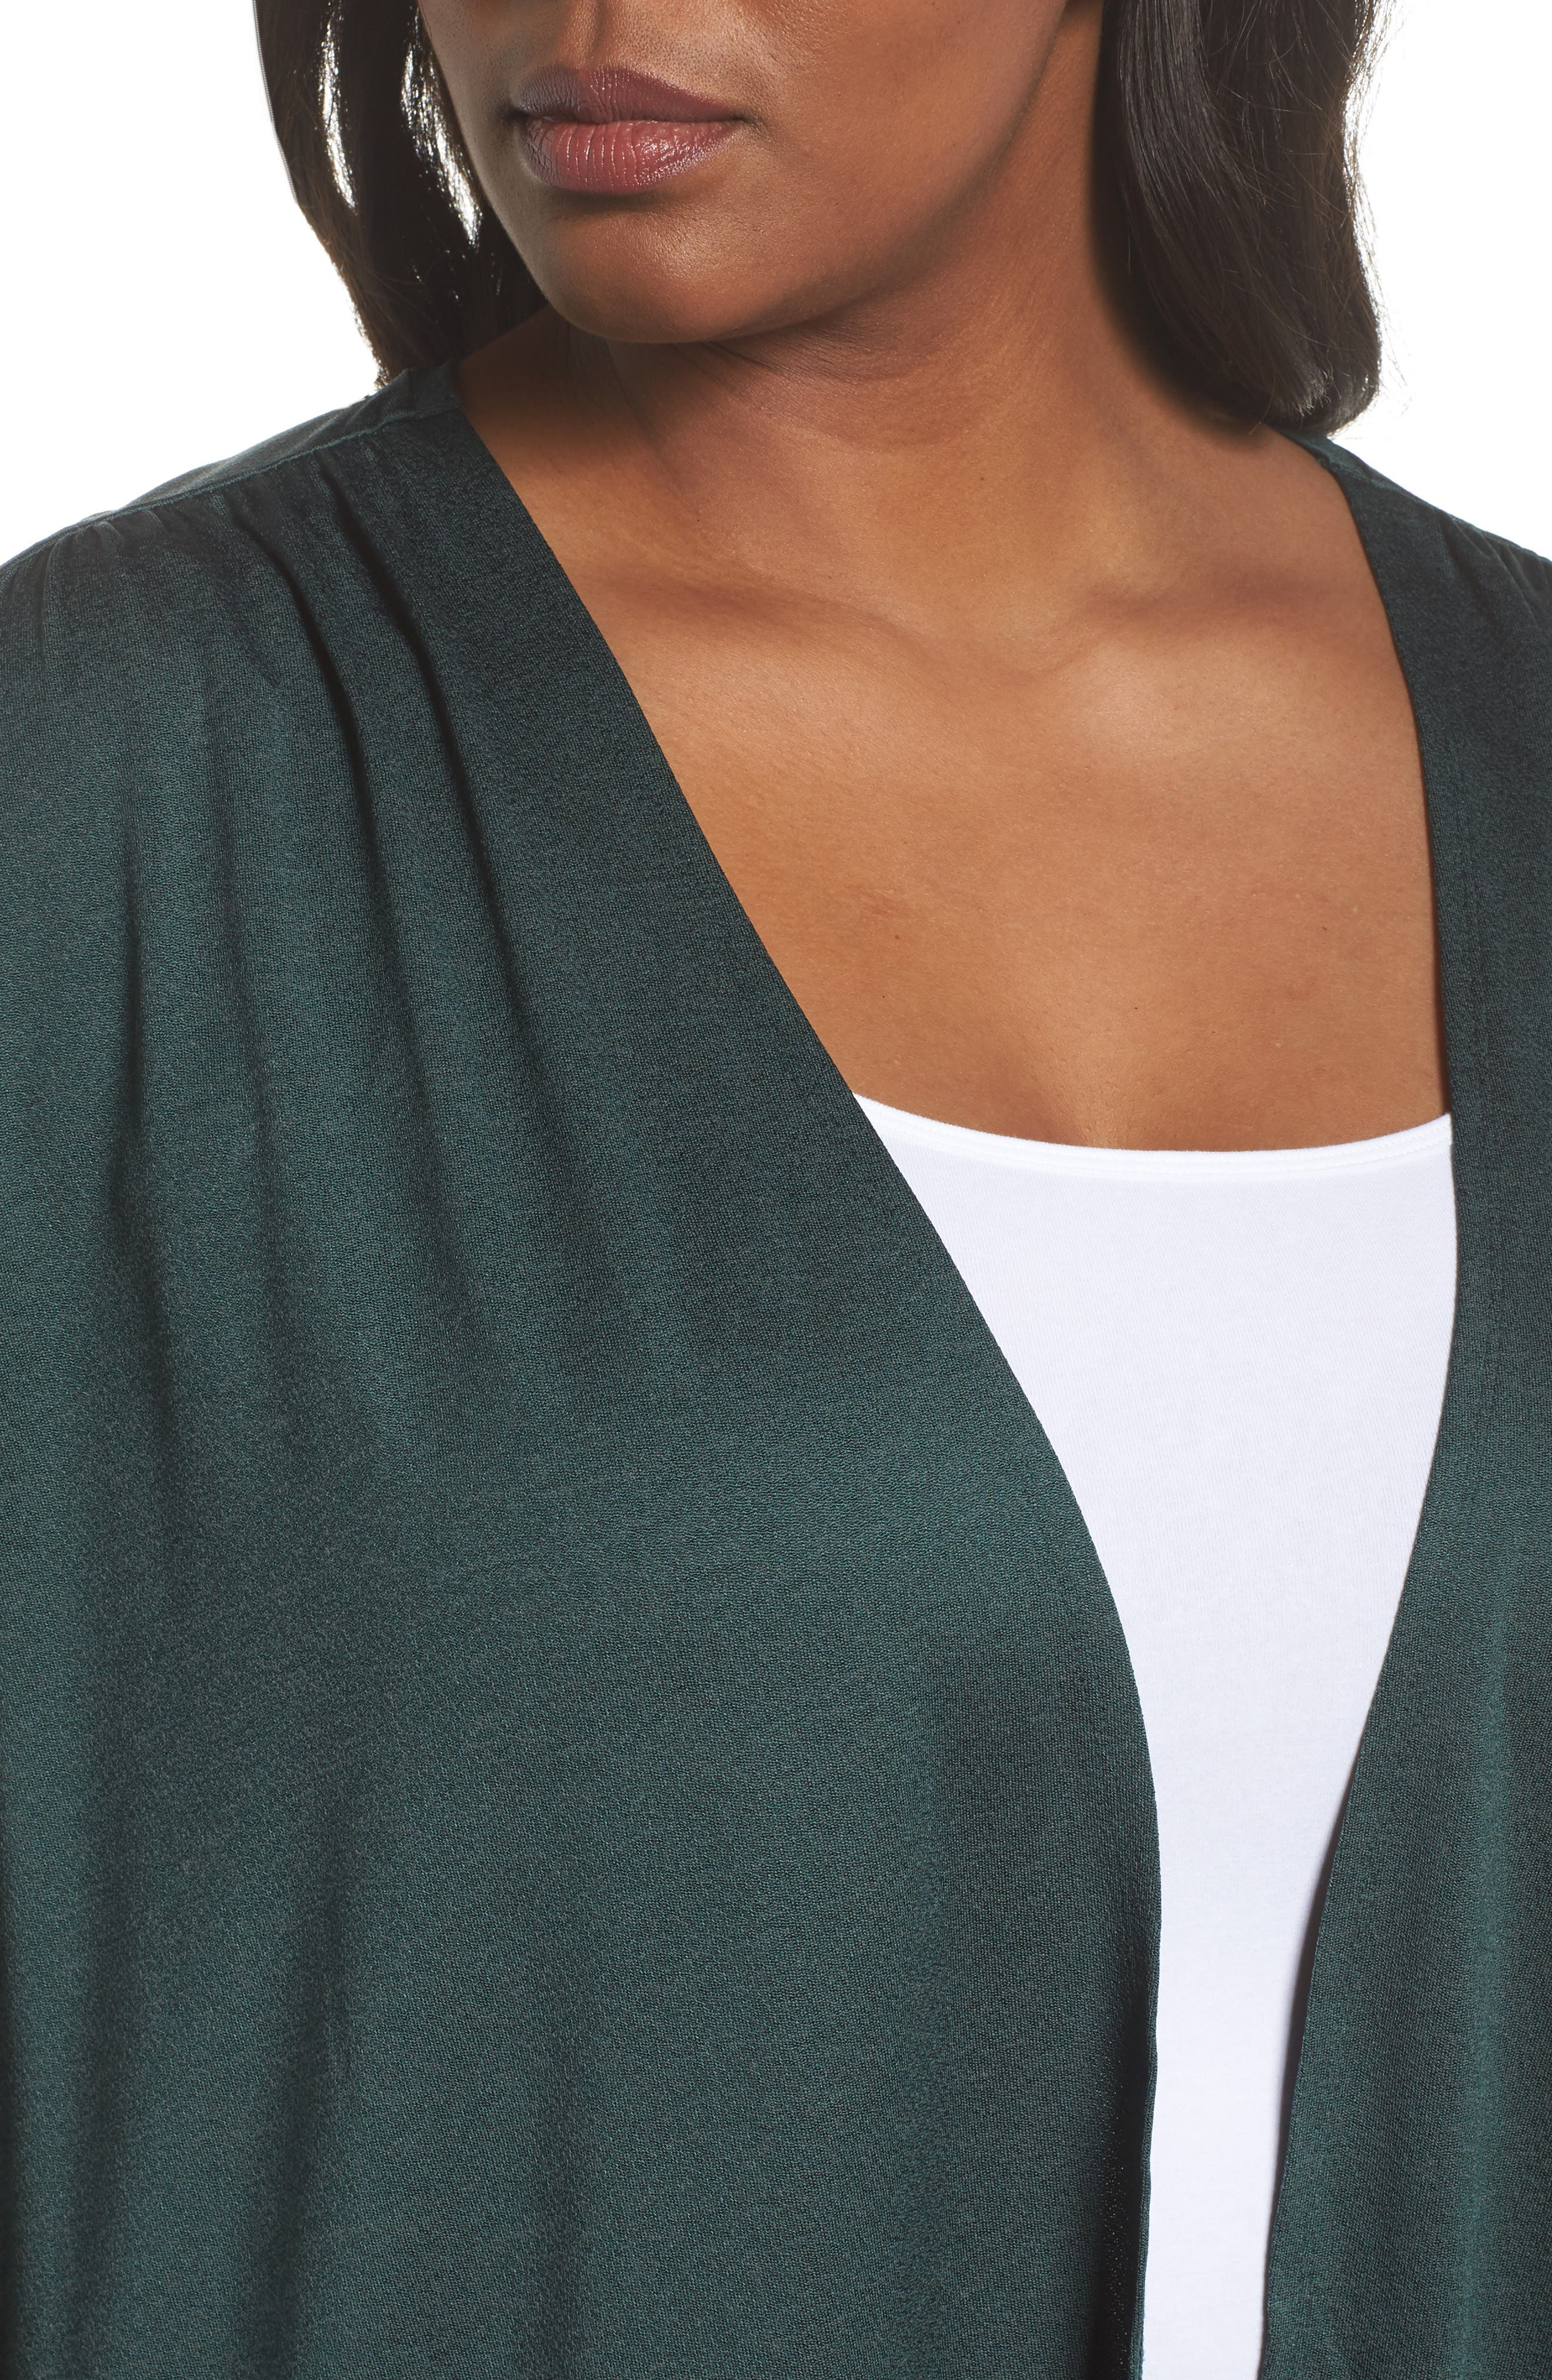 Cocoon Cardigan,                             Alternate thumbnail 4, color,                             Green Bug